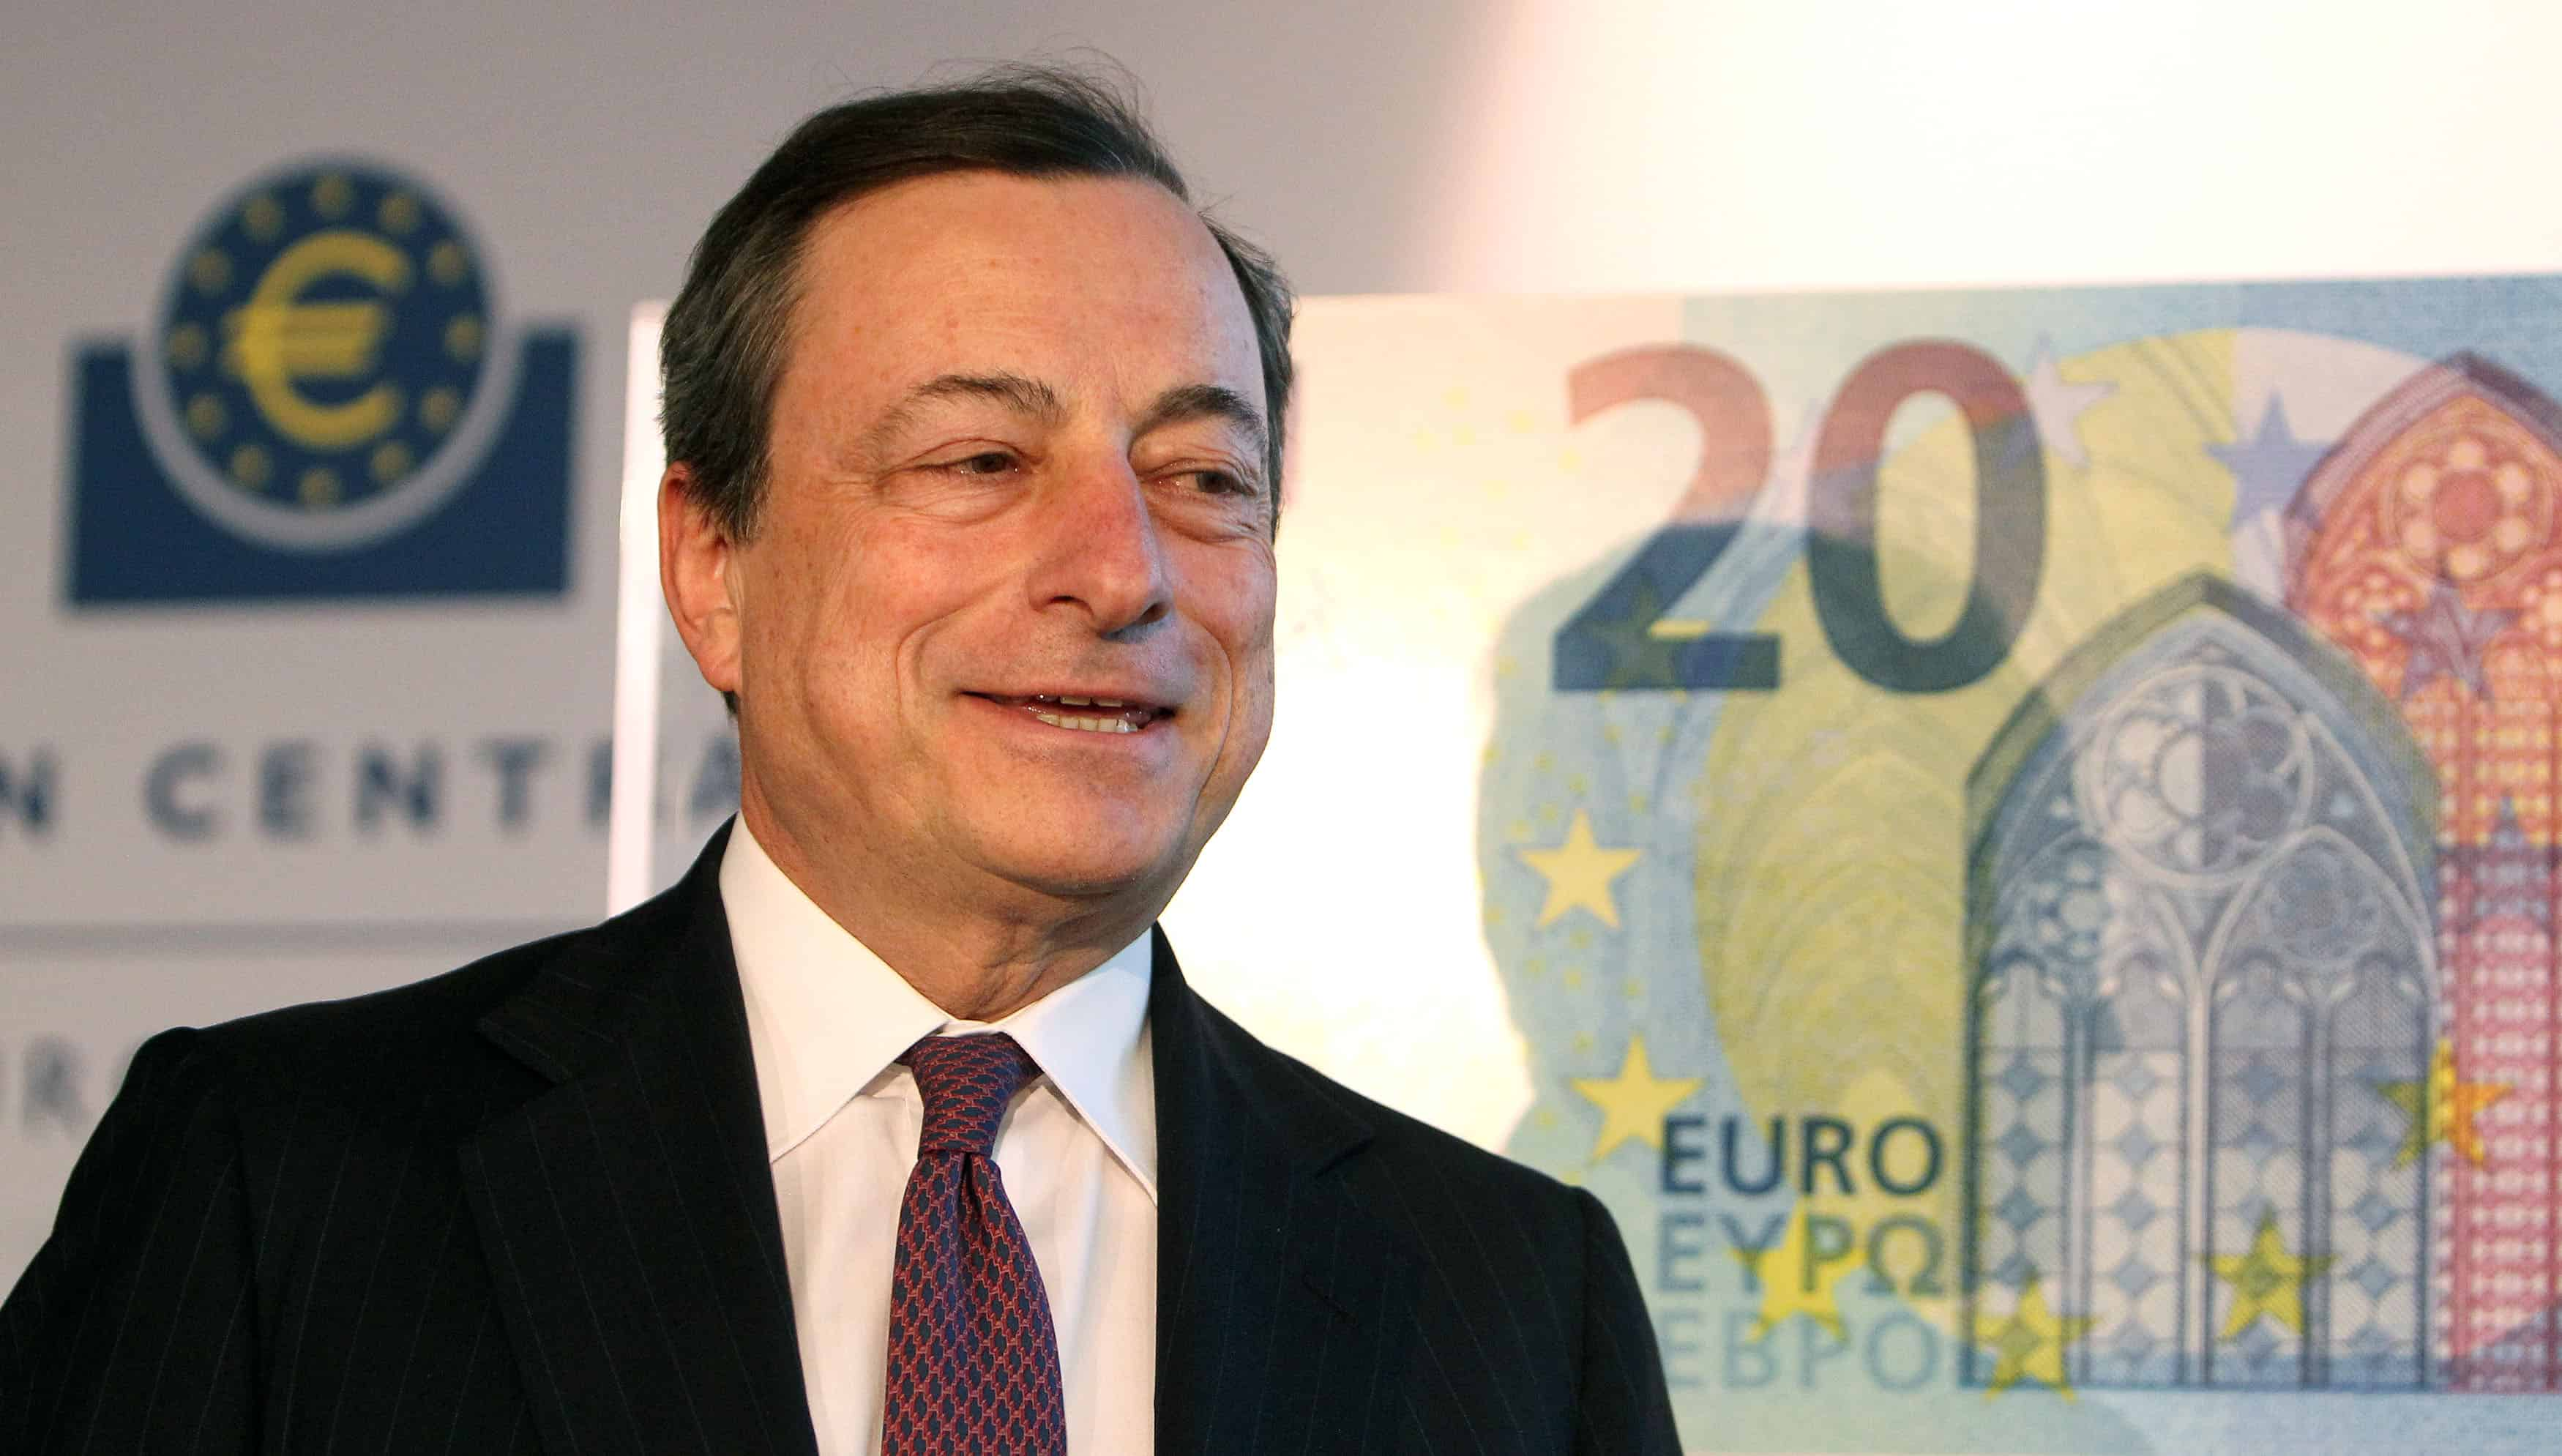 Mario Draghi, president of the European Central Bank, presents the new €20 note.